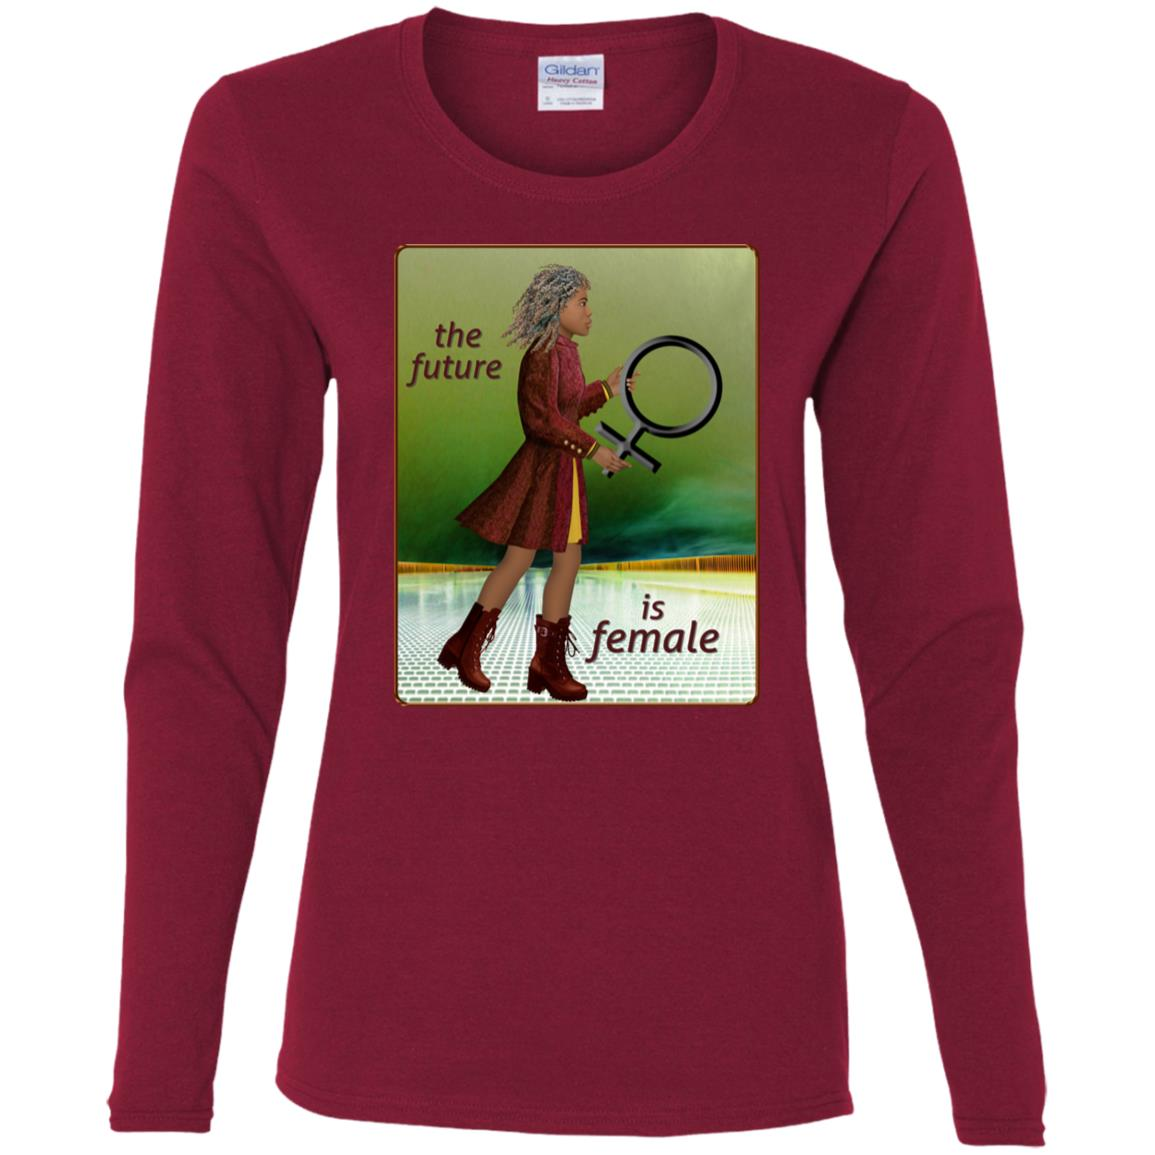 The Future Is Female - Women's Long Sleeve Tee